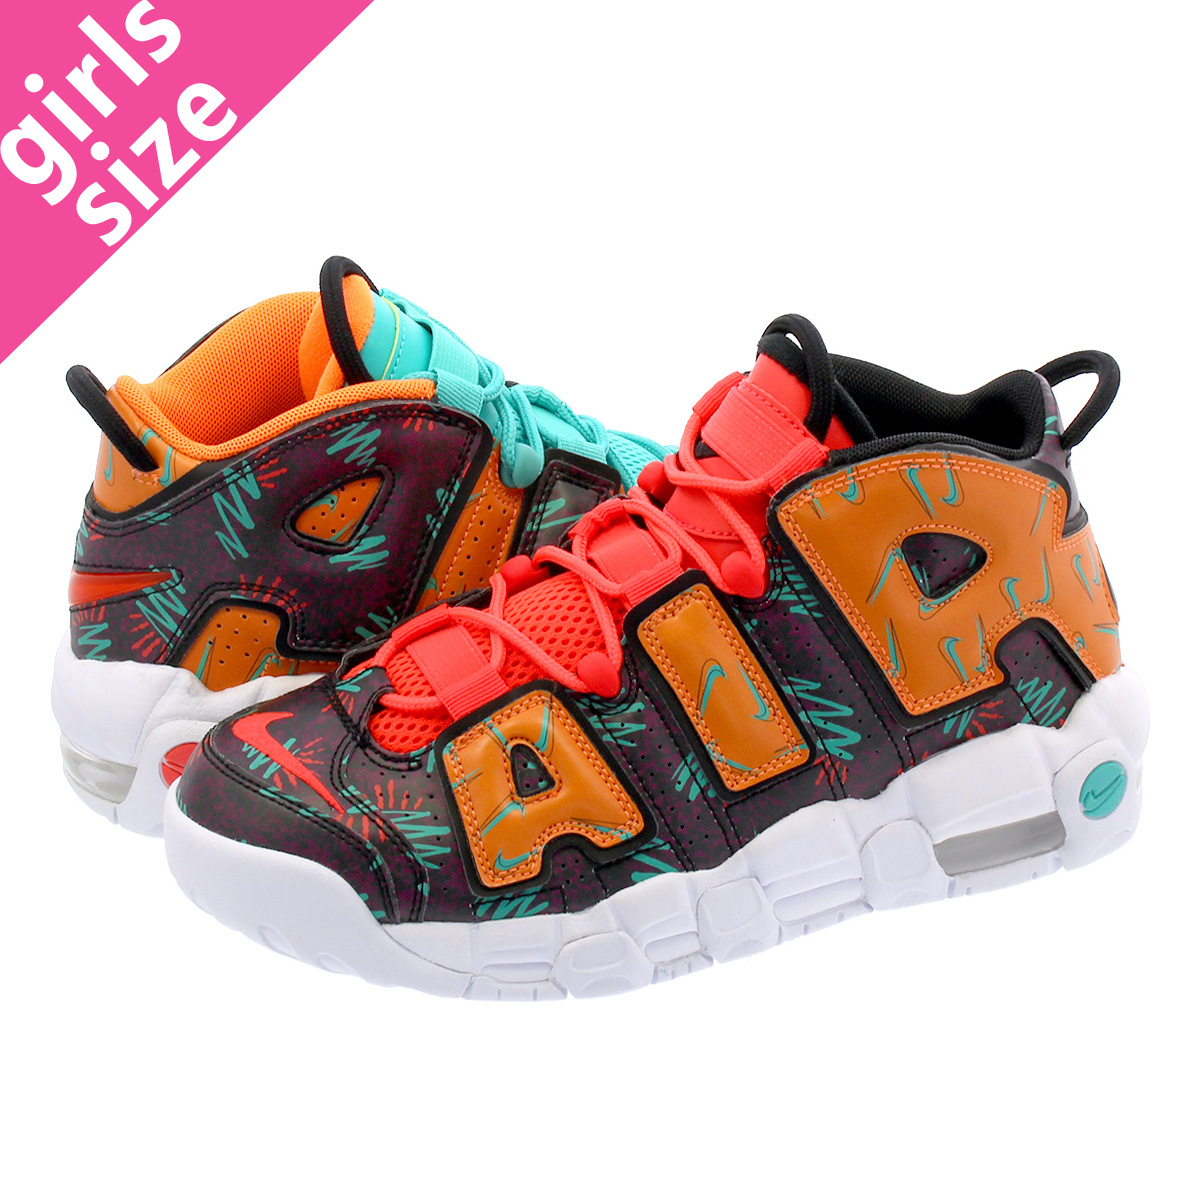 878f093a4 NIKE AIR MORE UPTEMPO GS Nike more up tempo GS TOTAL ORANGE BLACK HYPER  JADE BORDEAUX at3408-800